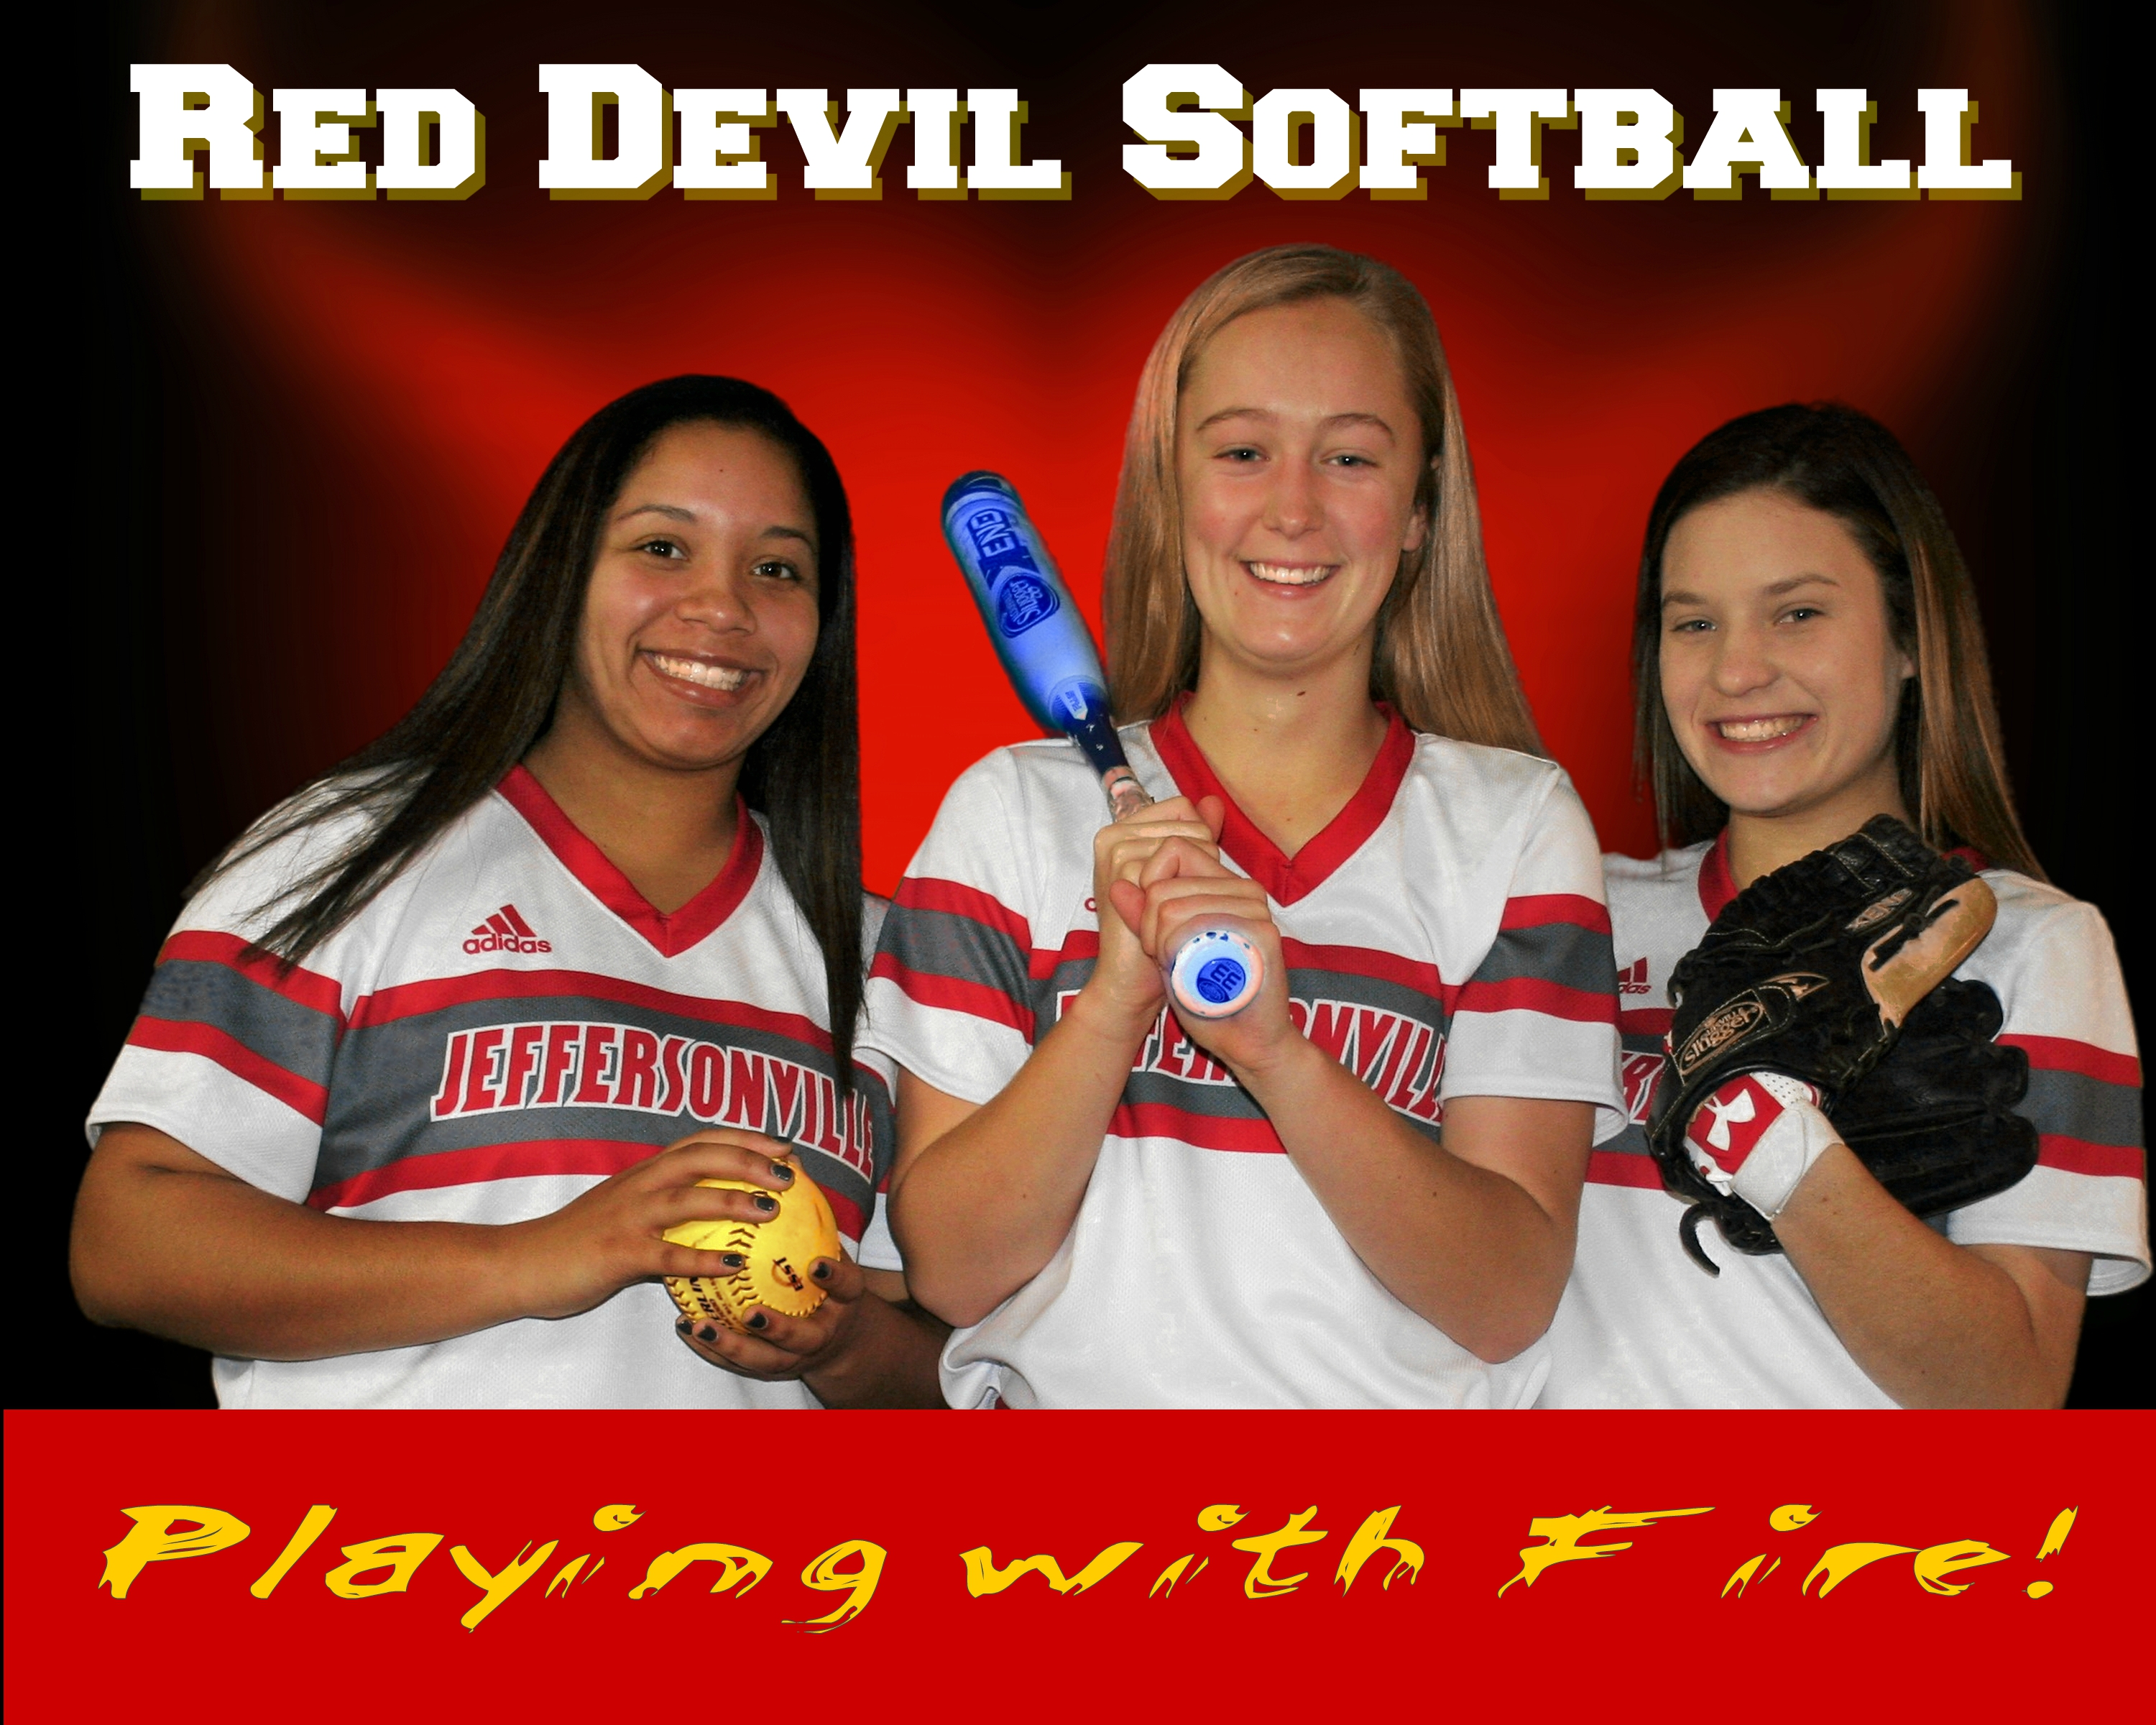 Red Devil Softball is Heating Up!